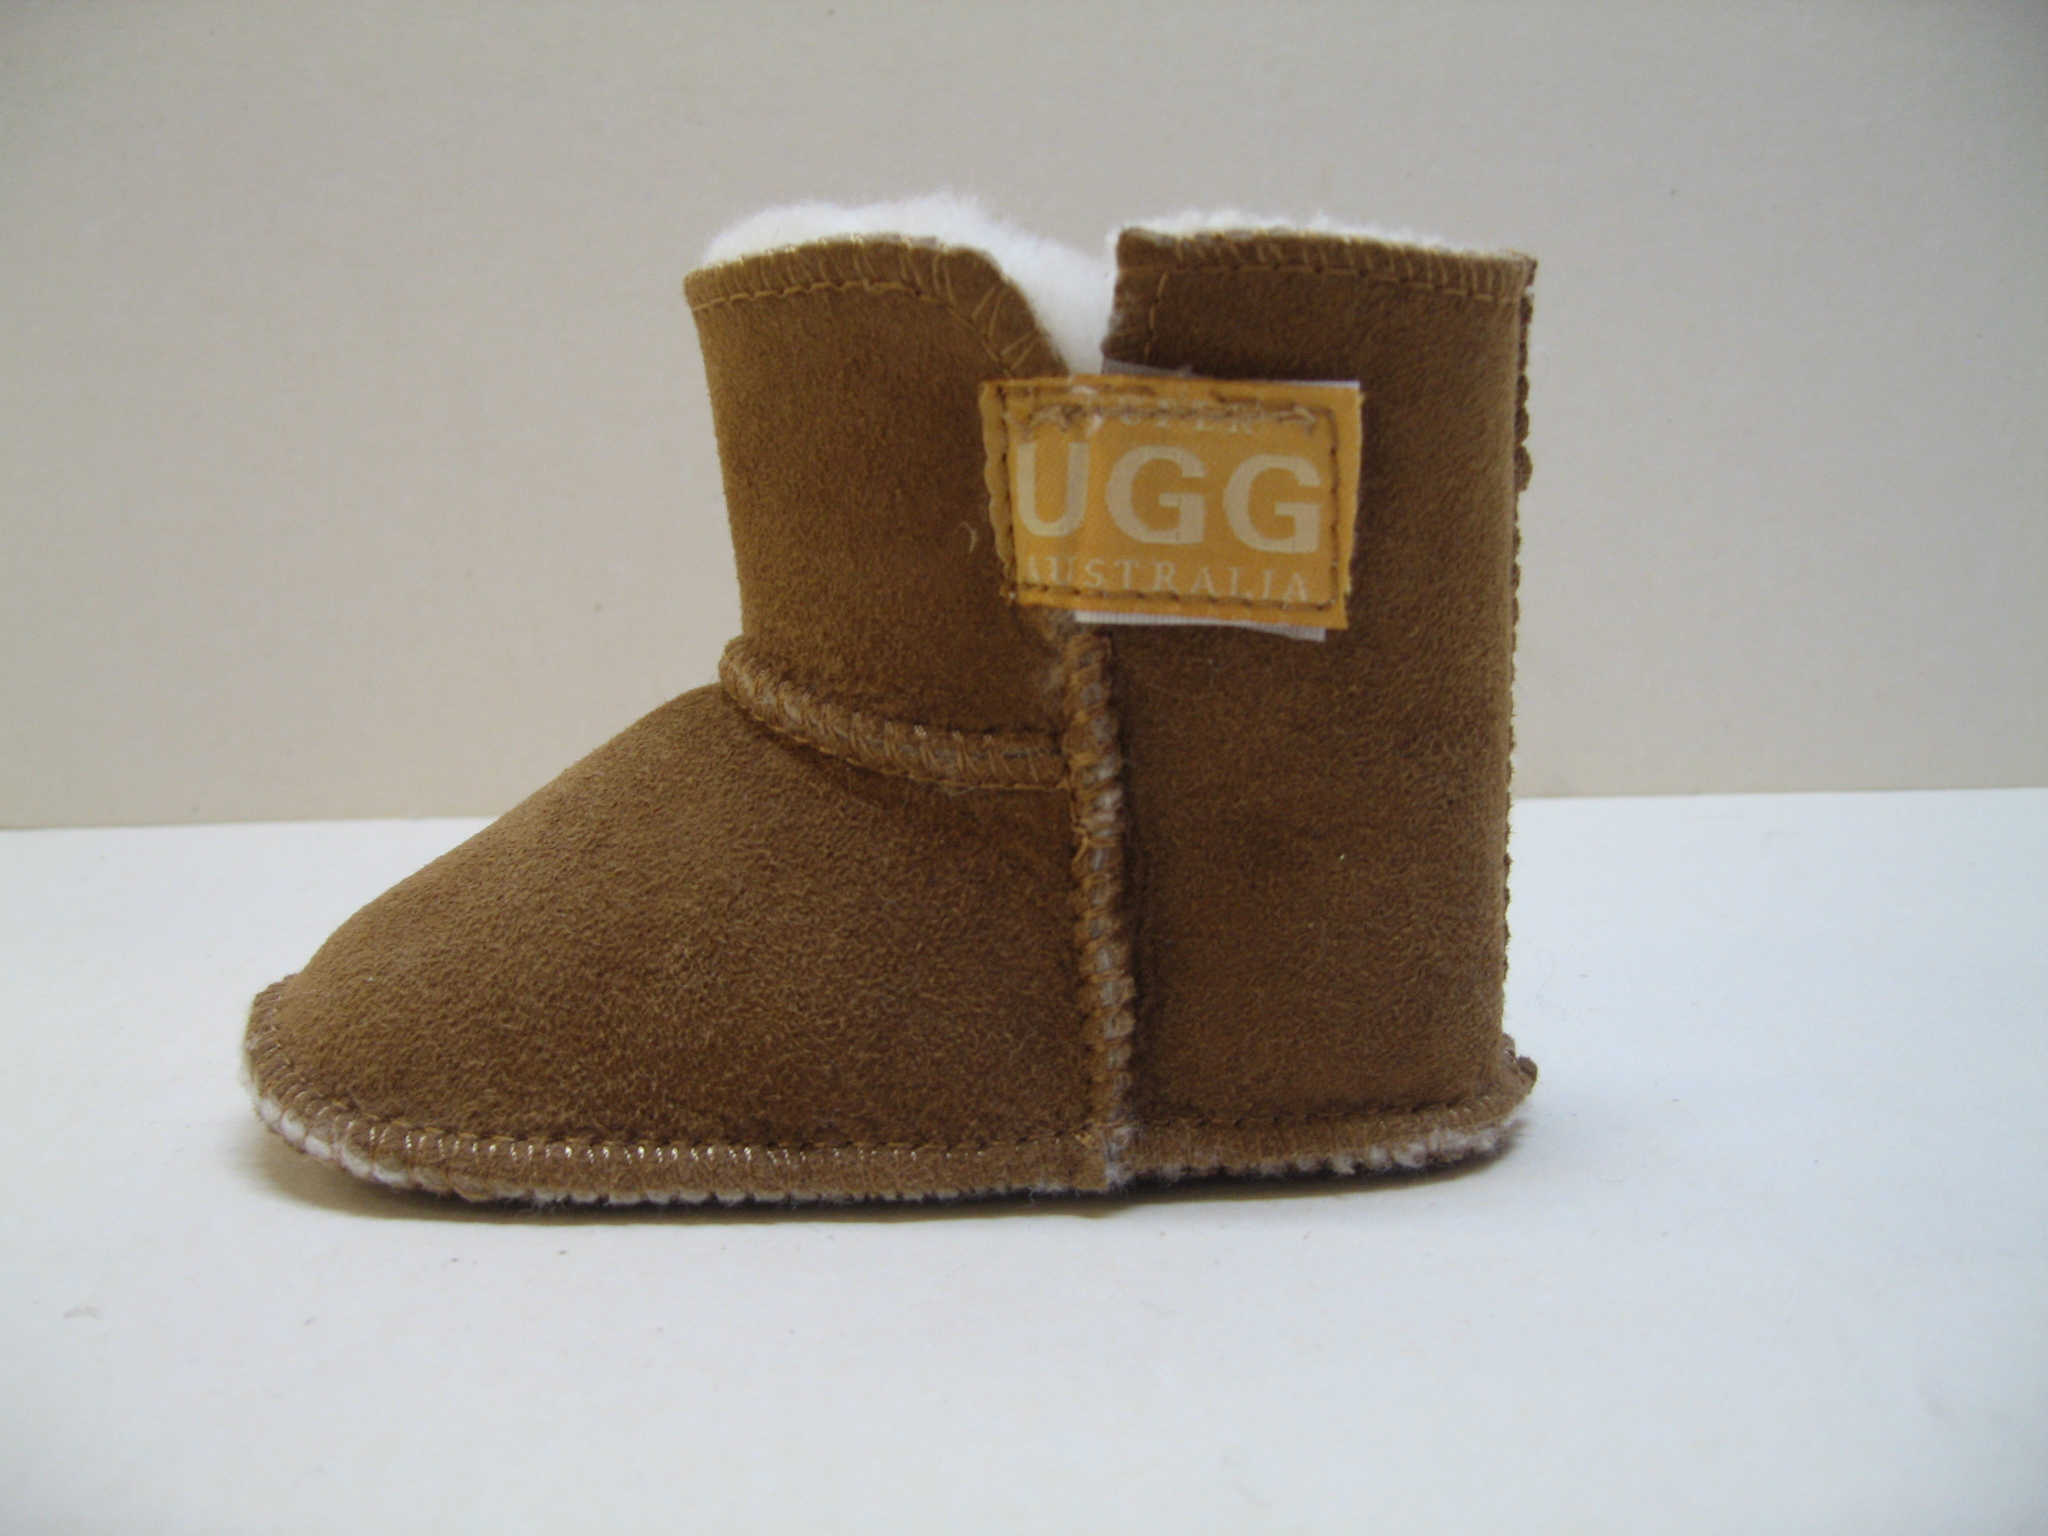 abca586310d Baby Girl Ugg Boots 6 12 Months - cheap watches mgc-gas.com